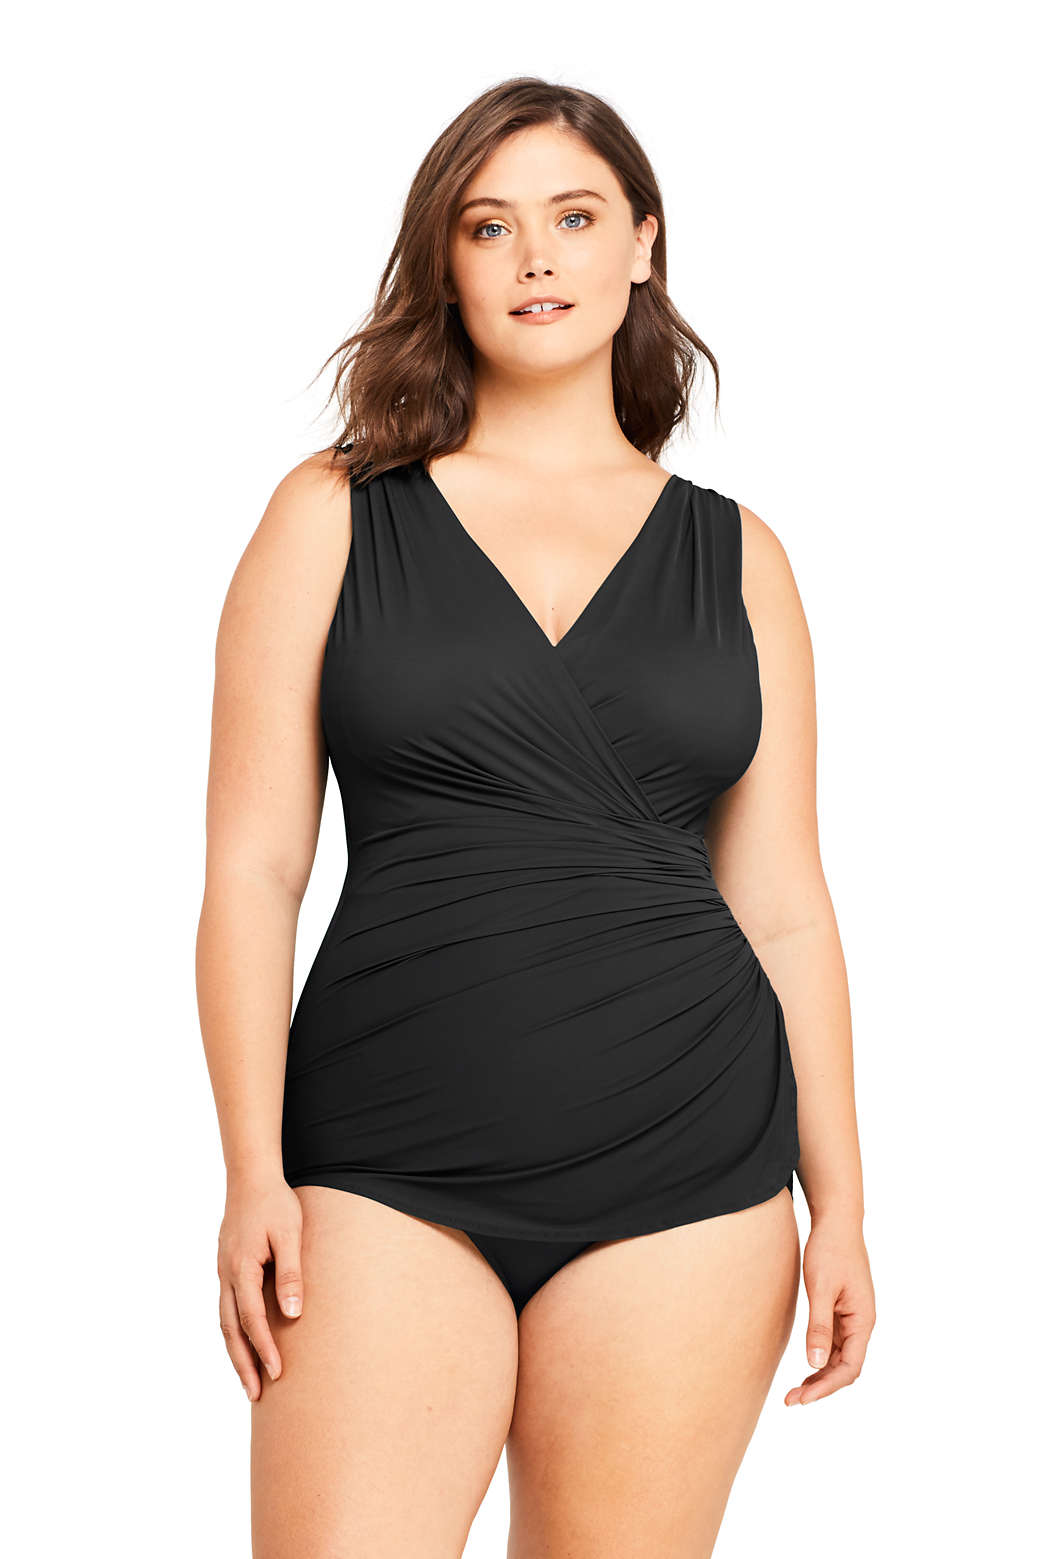 ccc9ed27c8e Lands End Womens Slender Surplice Tunic One Piece Swimsuit with Tummy  Control Women Sports & Outdoors